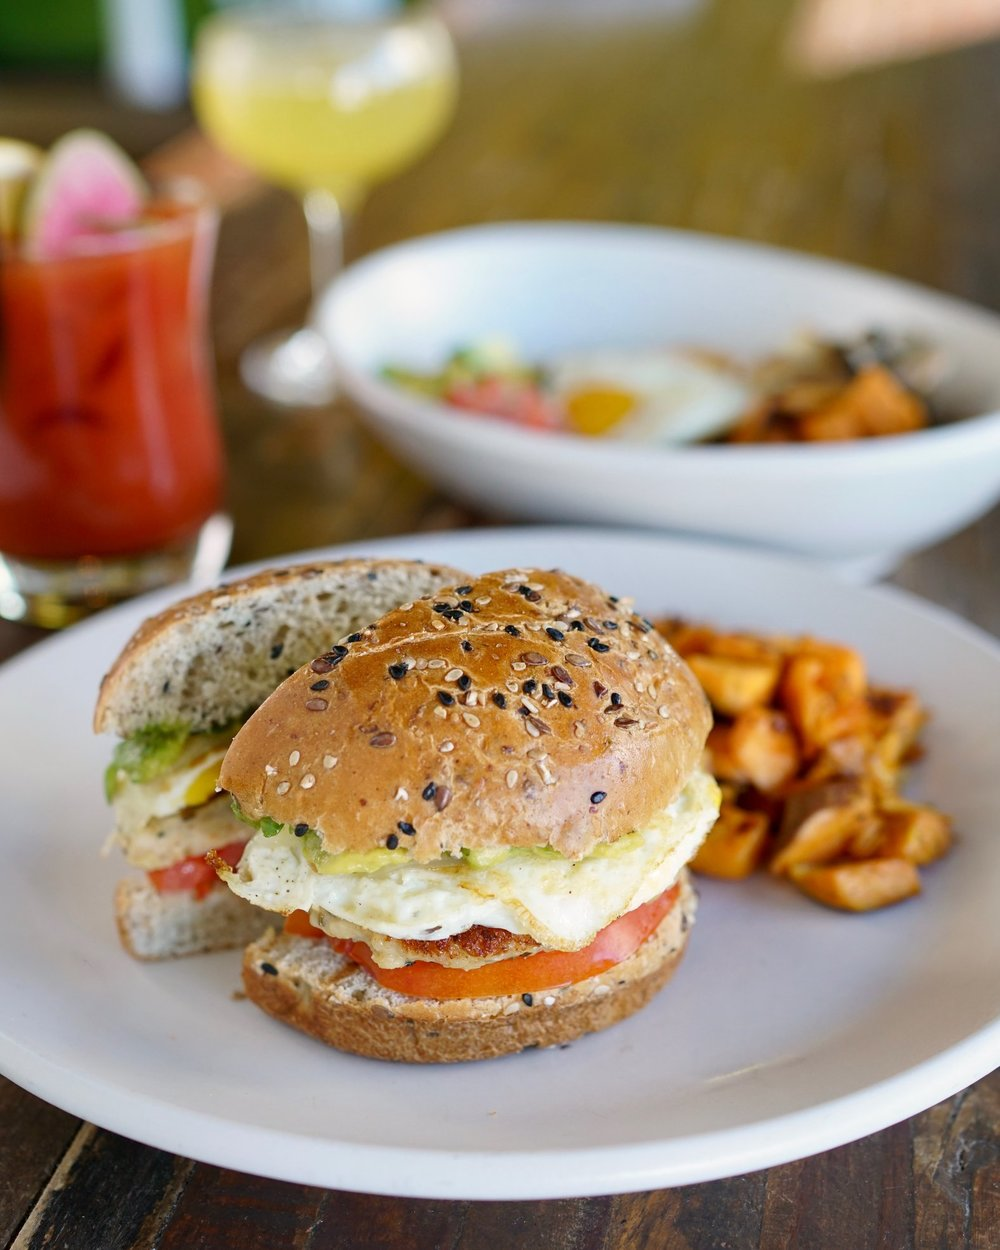 True Food | 8383 Preston Center Plaza #100 - Perhaps the healthiest brunch menu in Dallas, this place will make you feel like you're cheating on your diet. There are also plenty of options for lunch and dinner but dieting or not, brunch is where it's at.